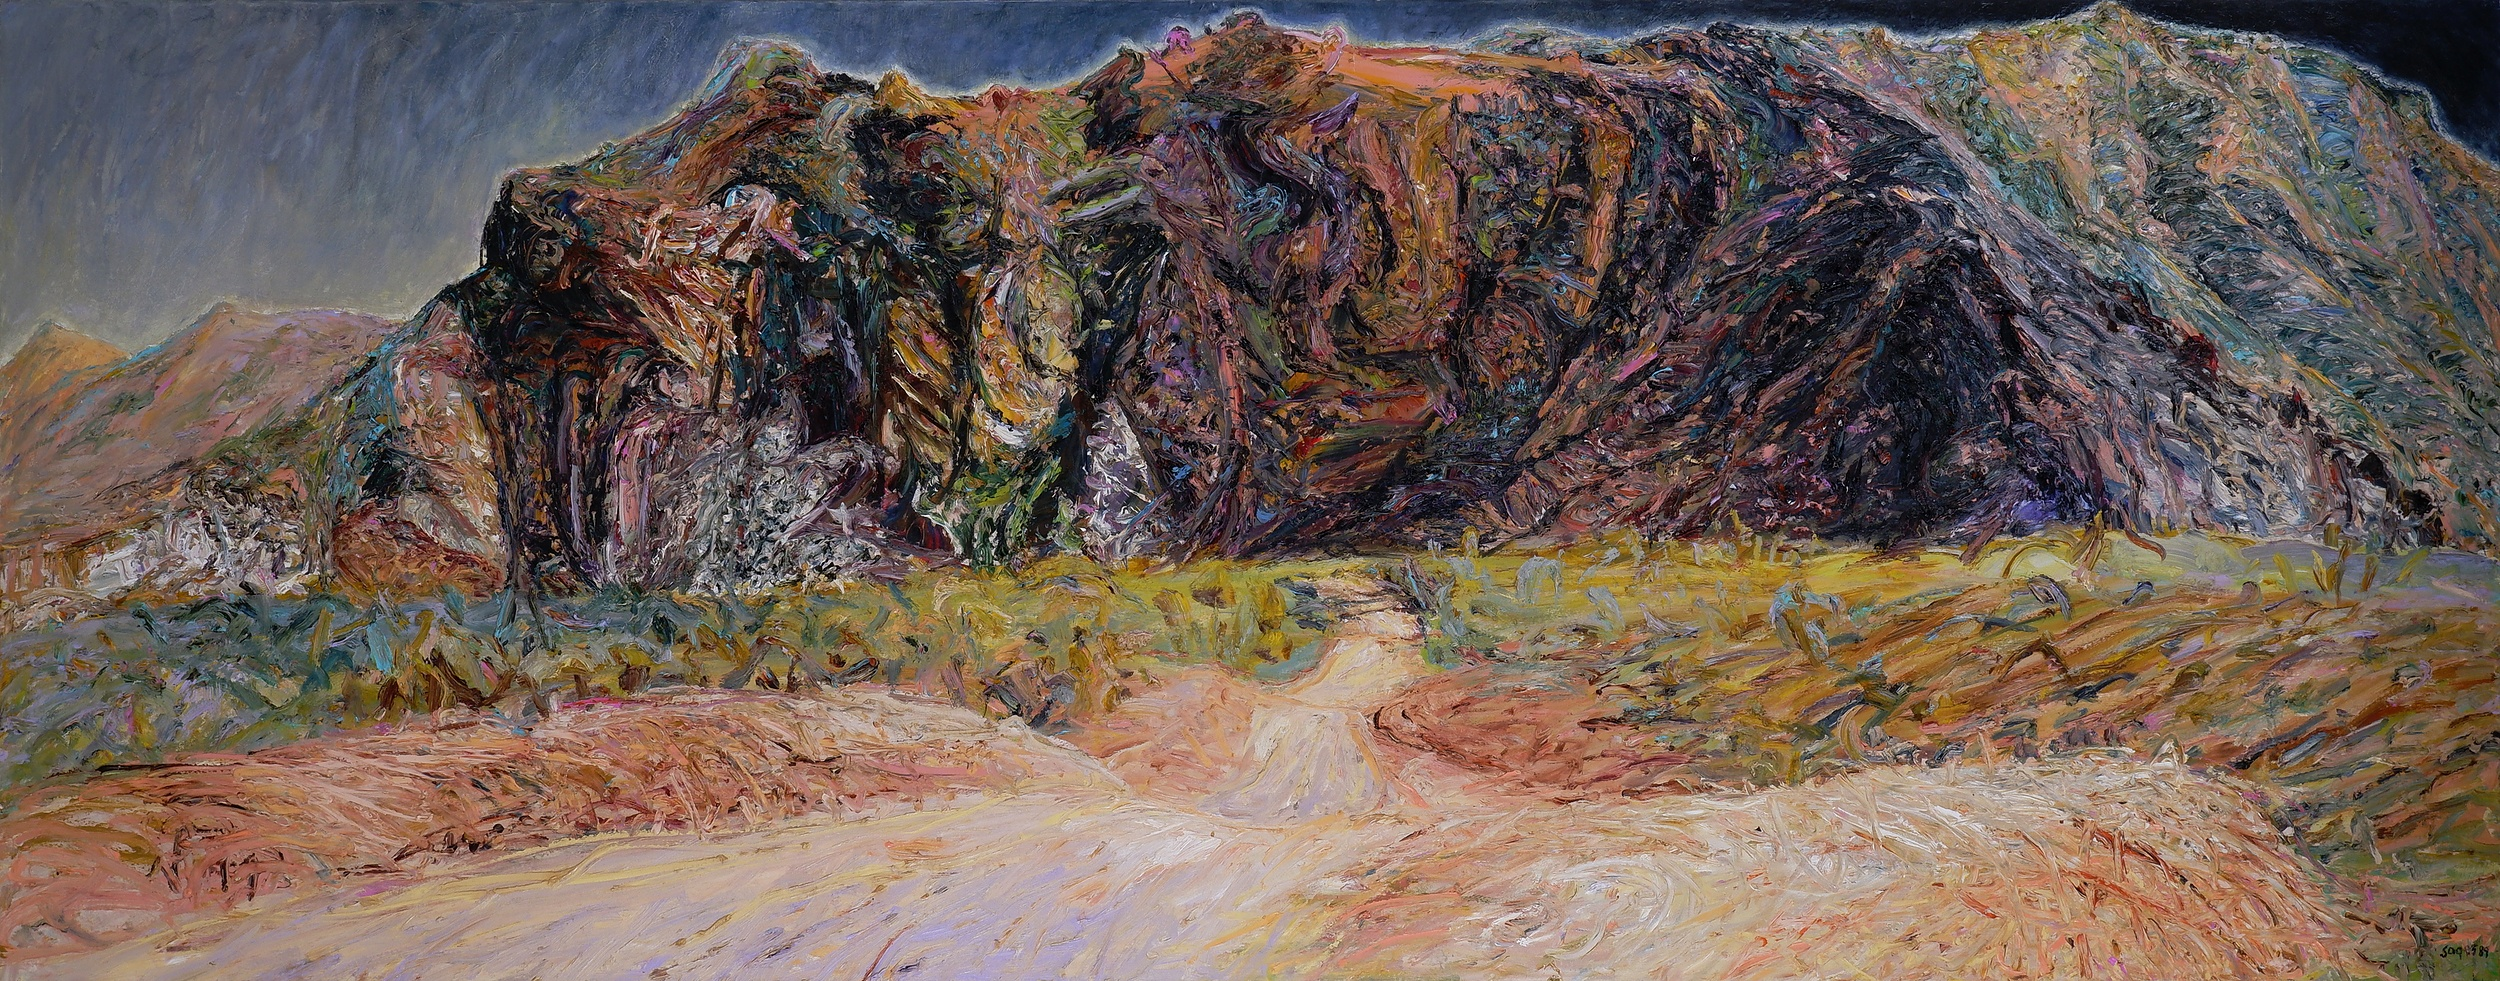 'Jenny Sages (born 1933), The Road to Bungle Bungle 1989, Oil on Canvas, 91 x 244 cm'